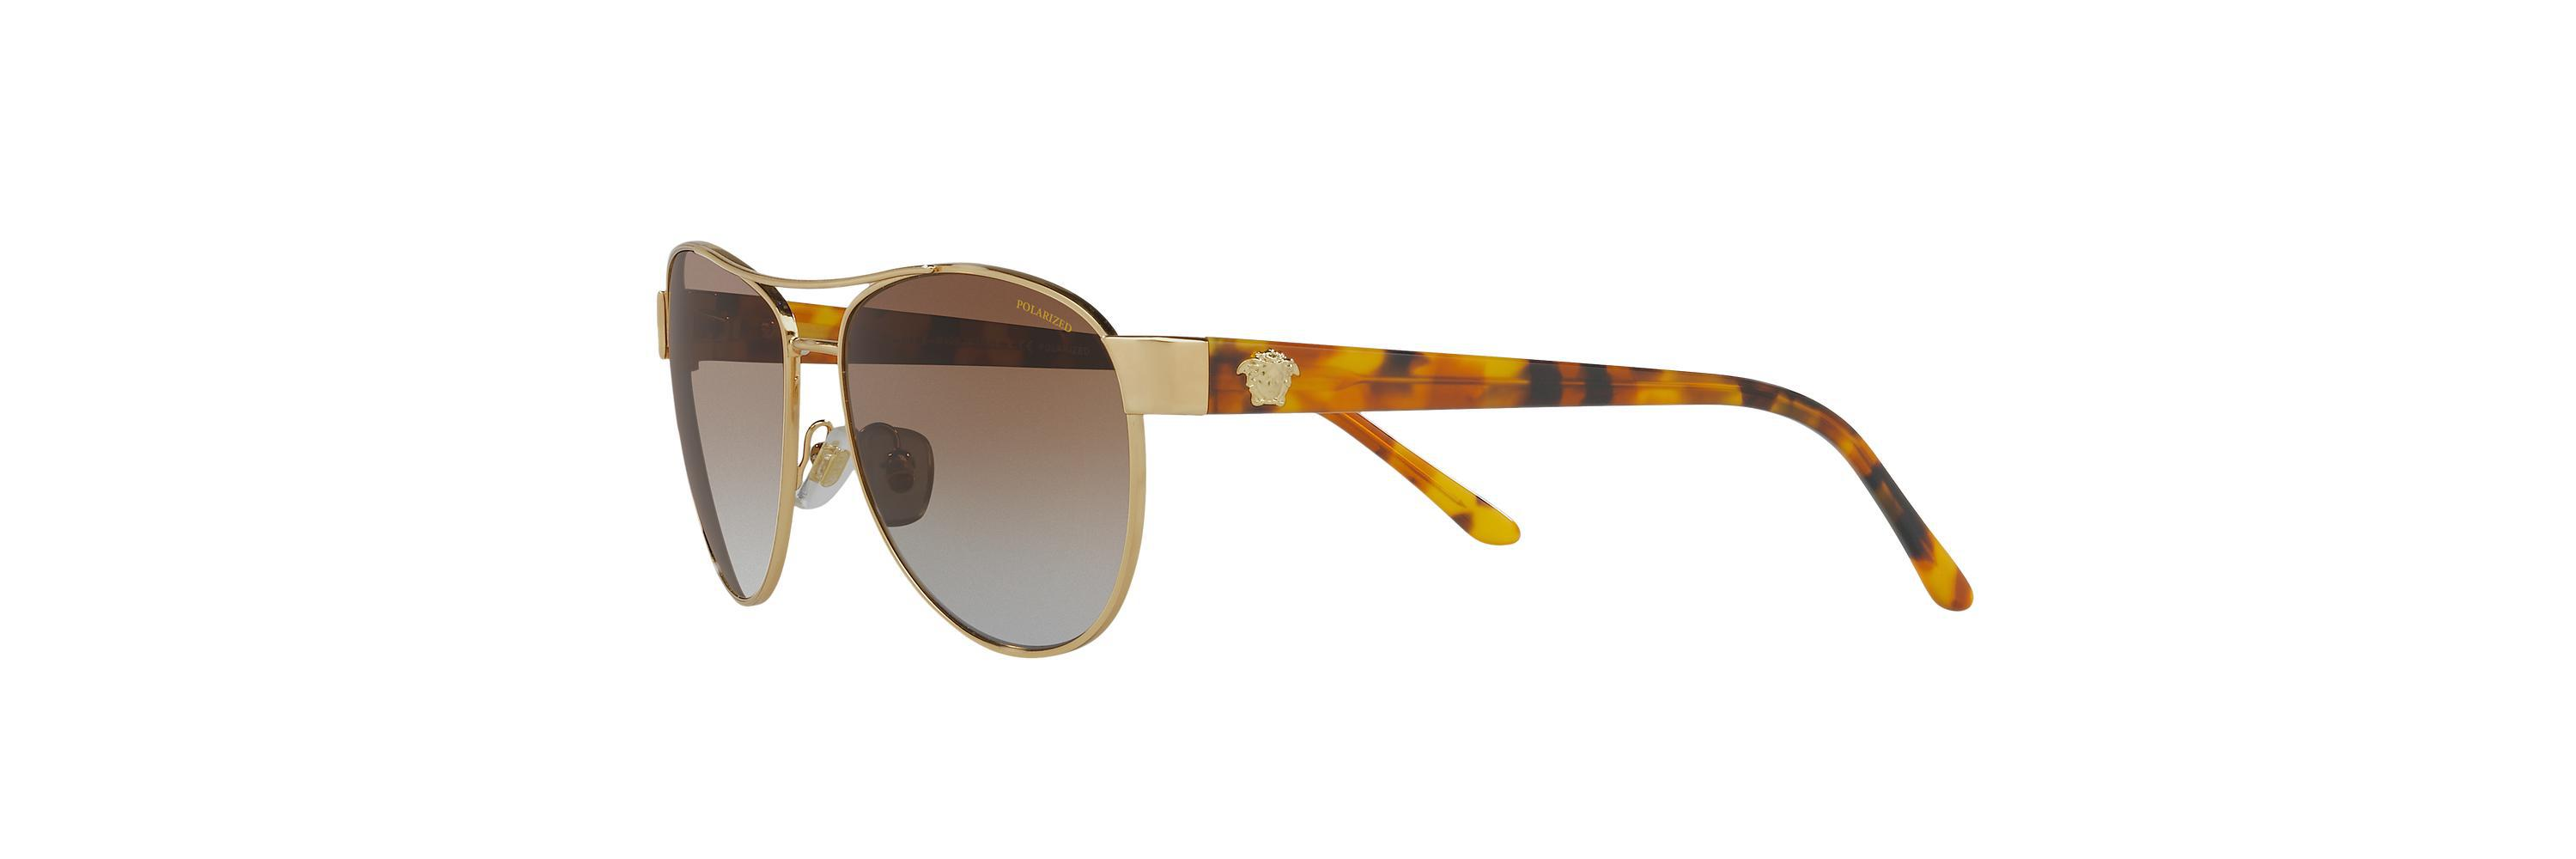 1b725a26bbd3 Lyst - Versace Ve2145 in Brown for Men